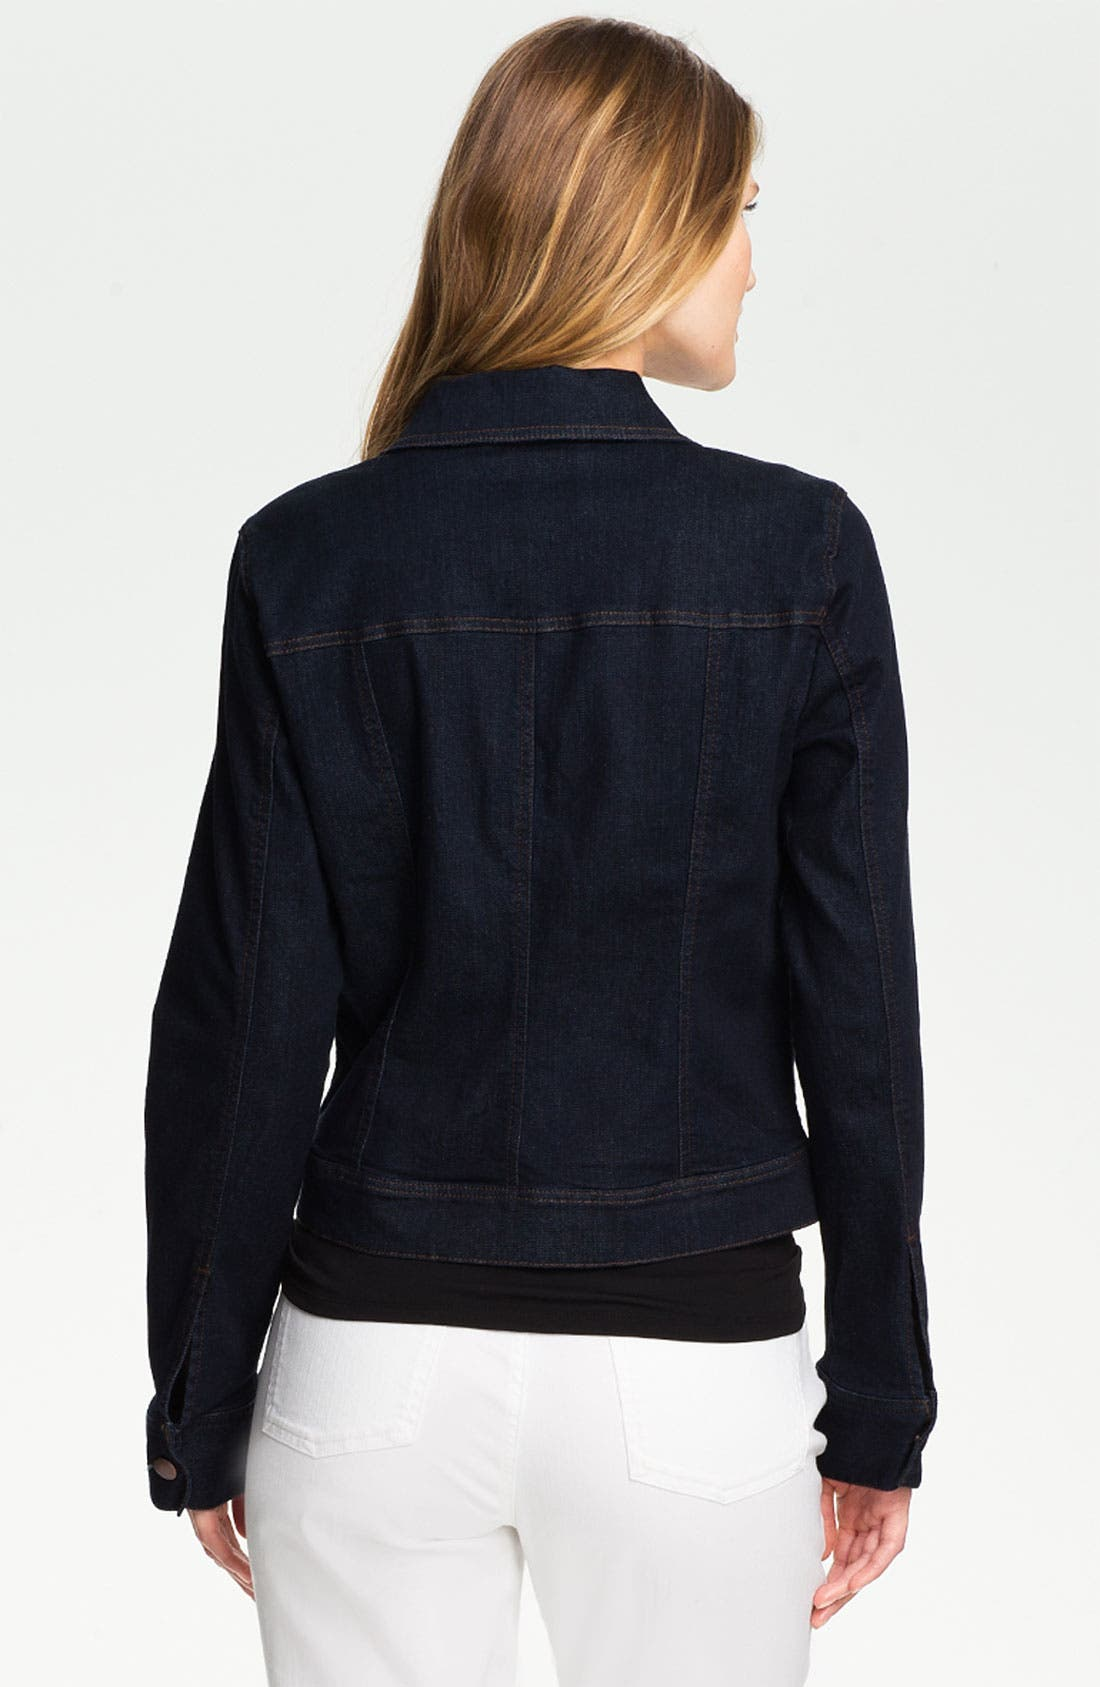 Organic Cotton Blend Denim Jacket,                             Alternate thumbnail 2, color,                             Indigo